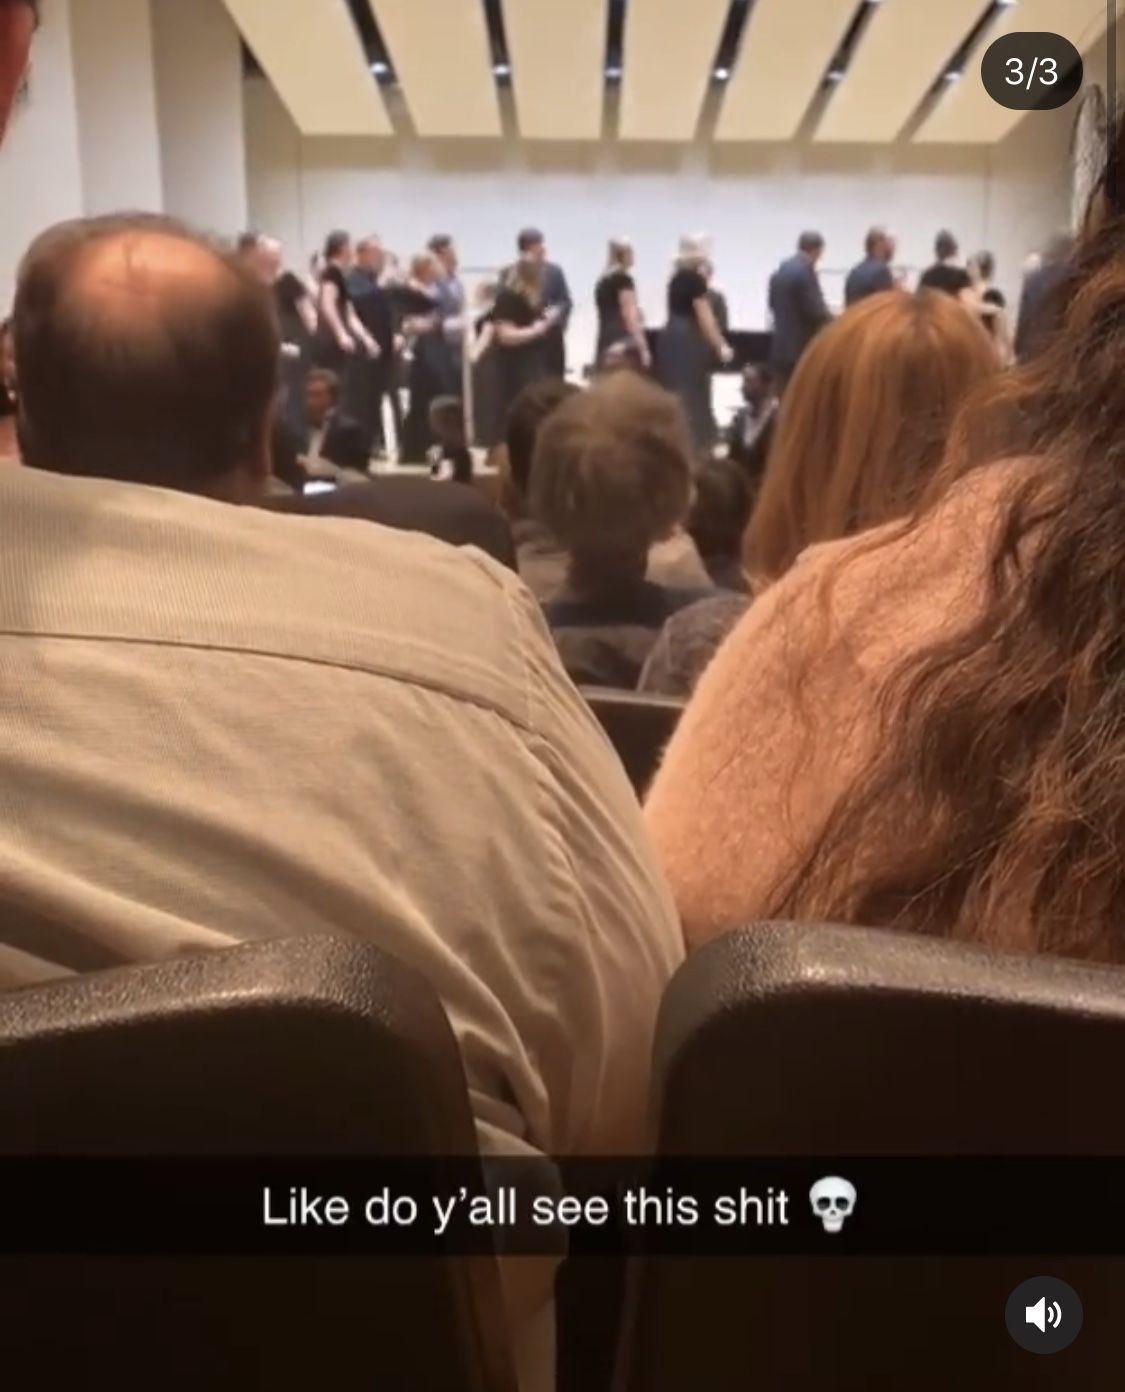 Shaylee Faught's screenshot from the performance has been shared on social media by thousands of people.